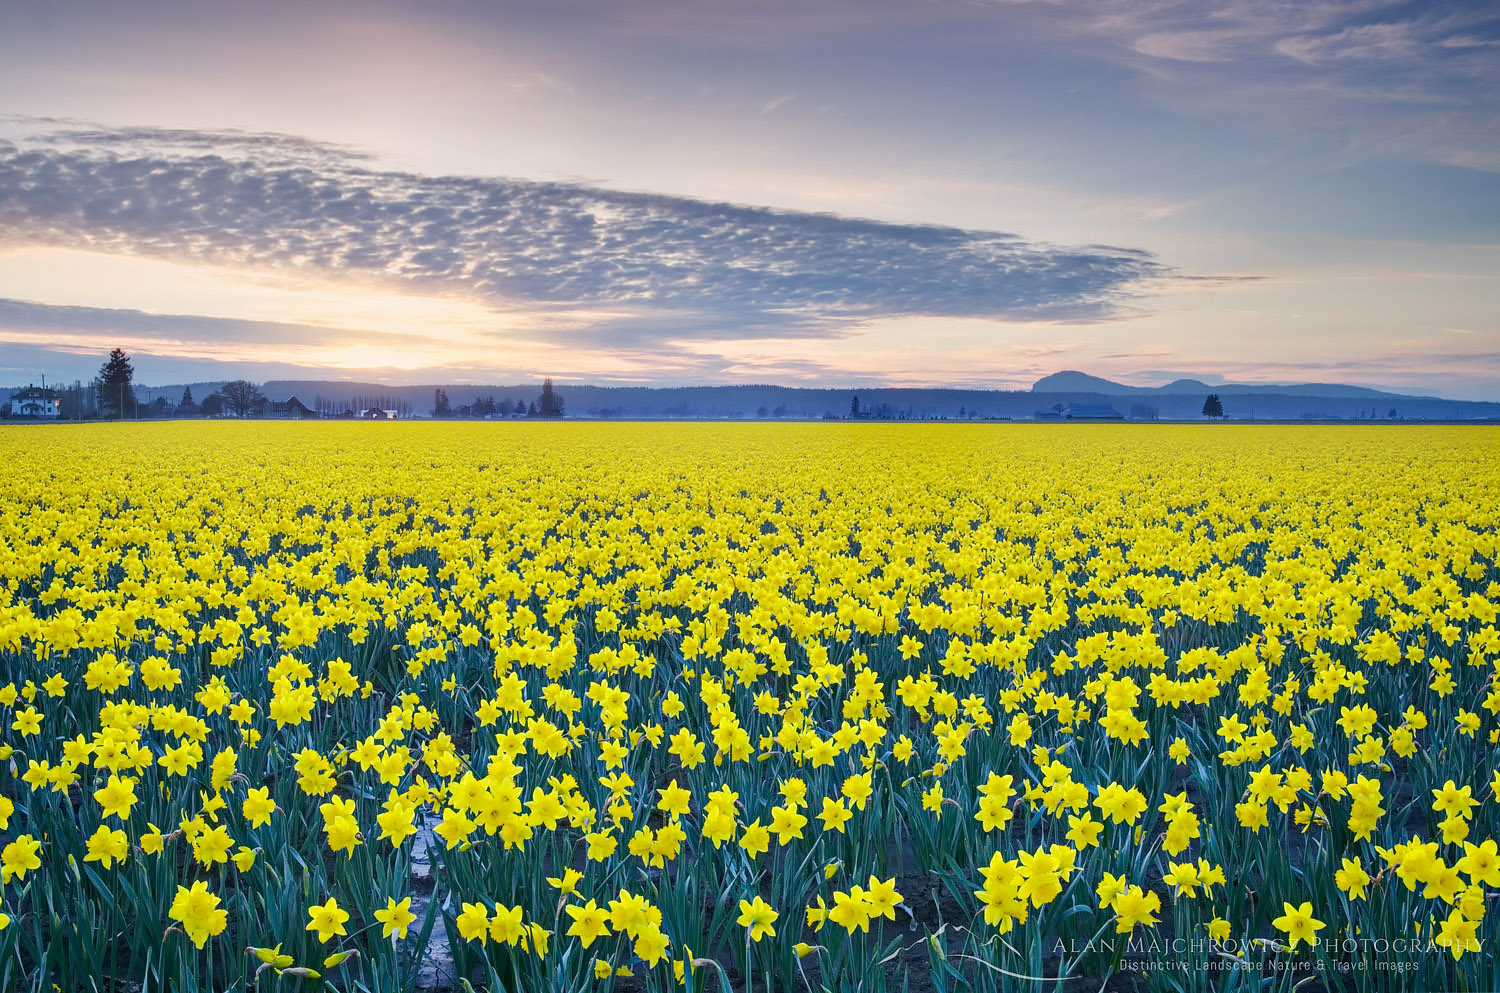 Skagit Valley Daffodils, Skagit Valley Daffodils and Snow Geese